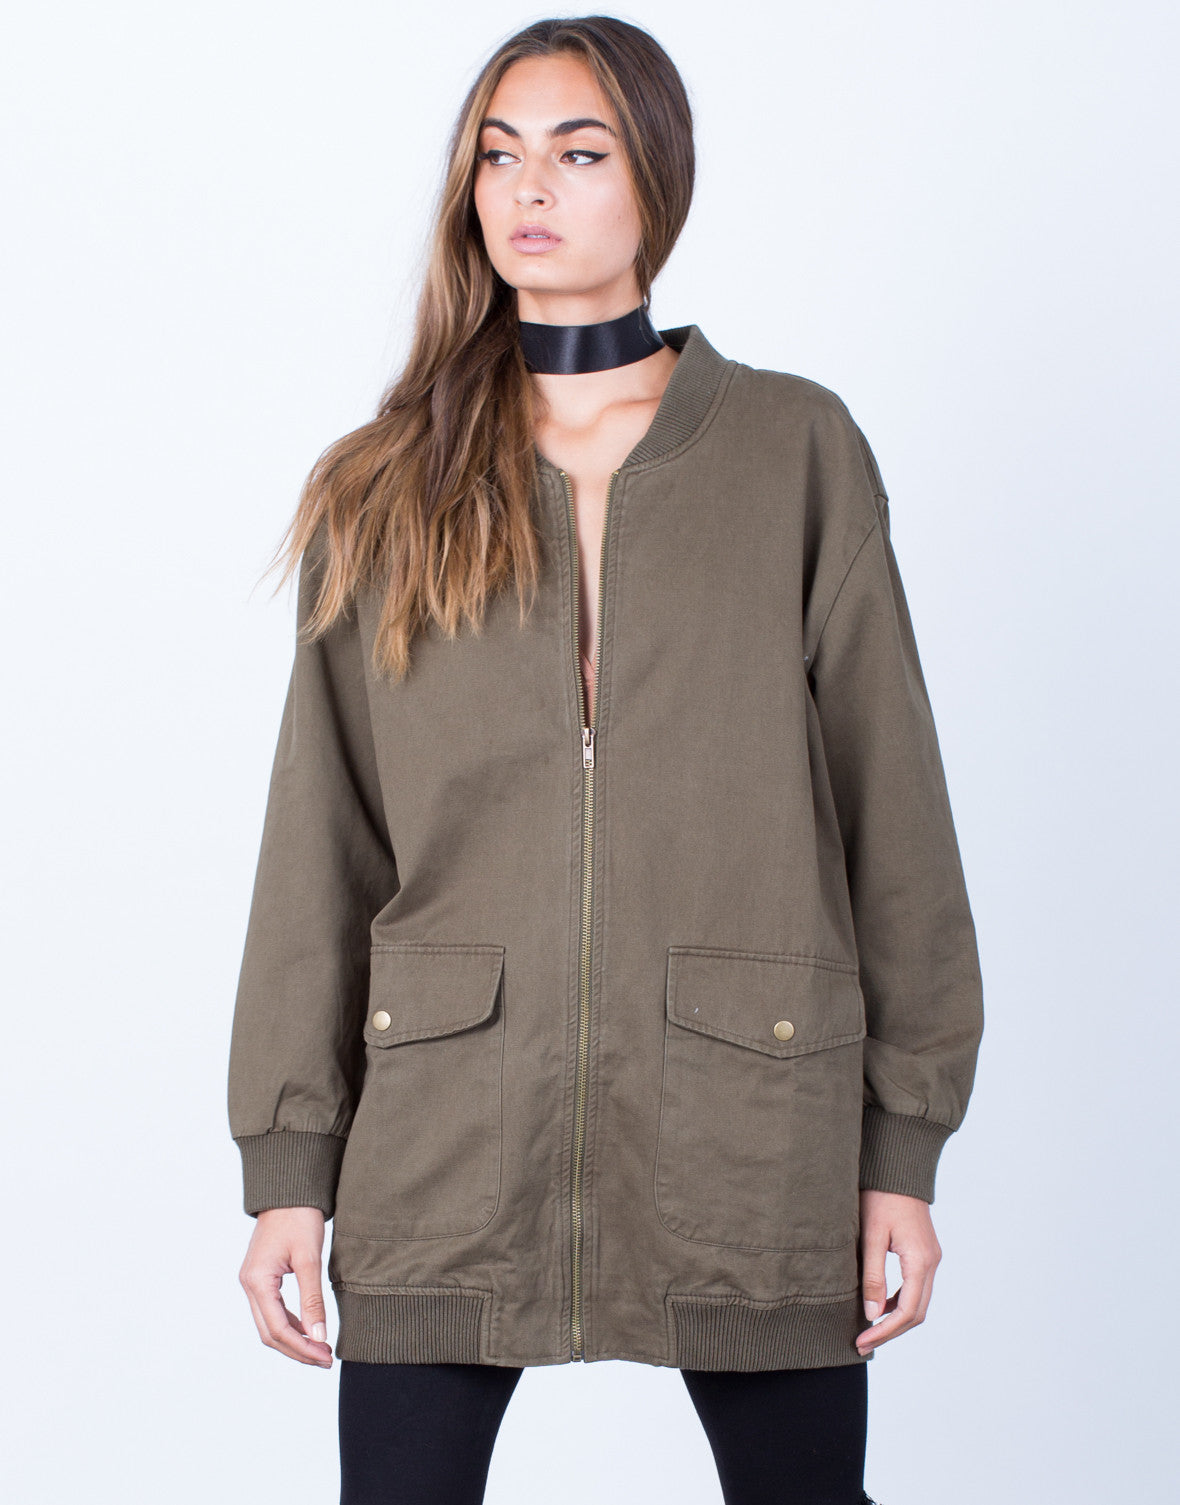 Front View of Long Zippered Bomber Jacket